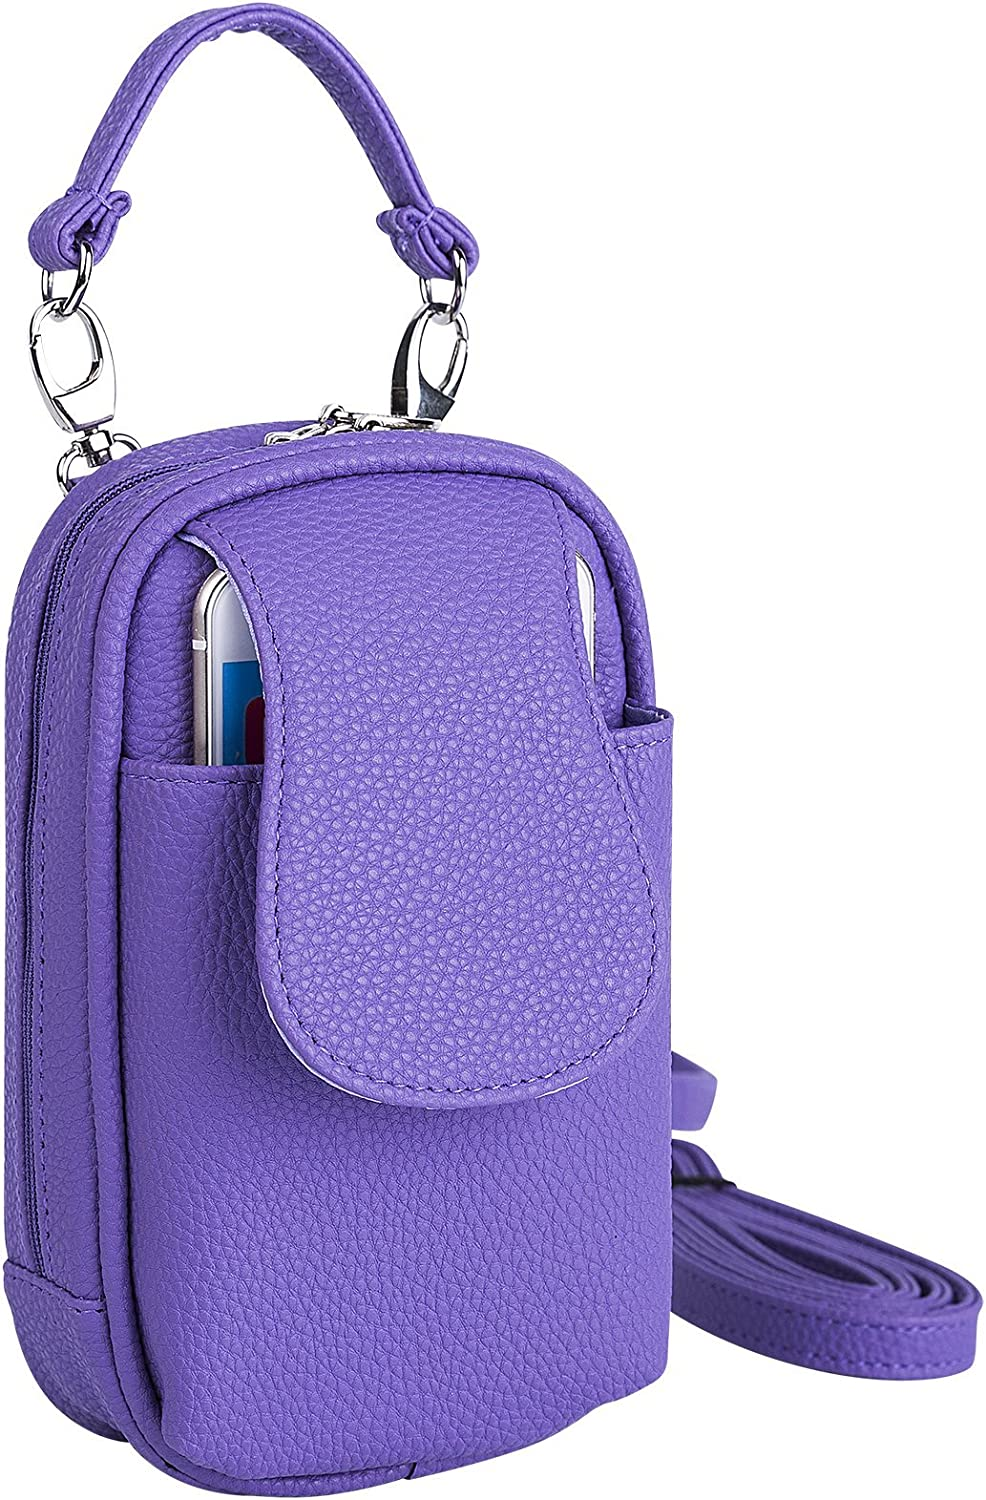 Cell Phone Purse CrossbodyiPhone6iPhone7iPhone8 Plus Size Leatherette Many colors